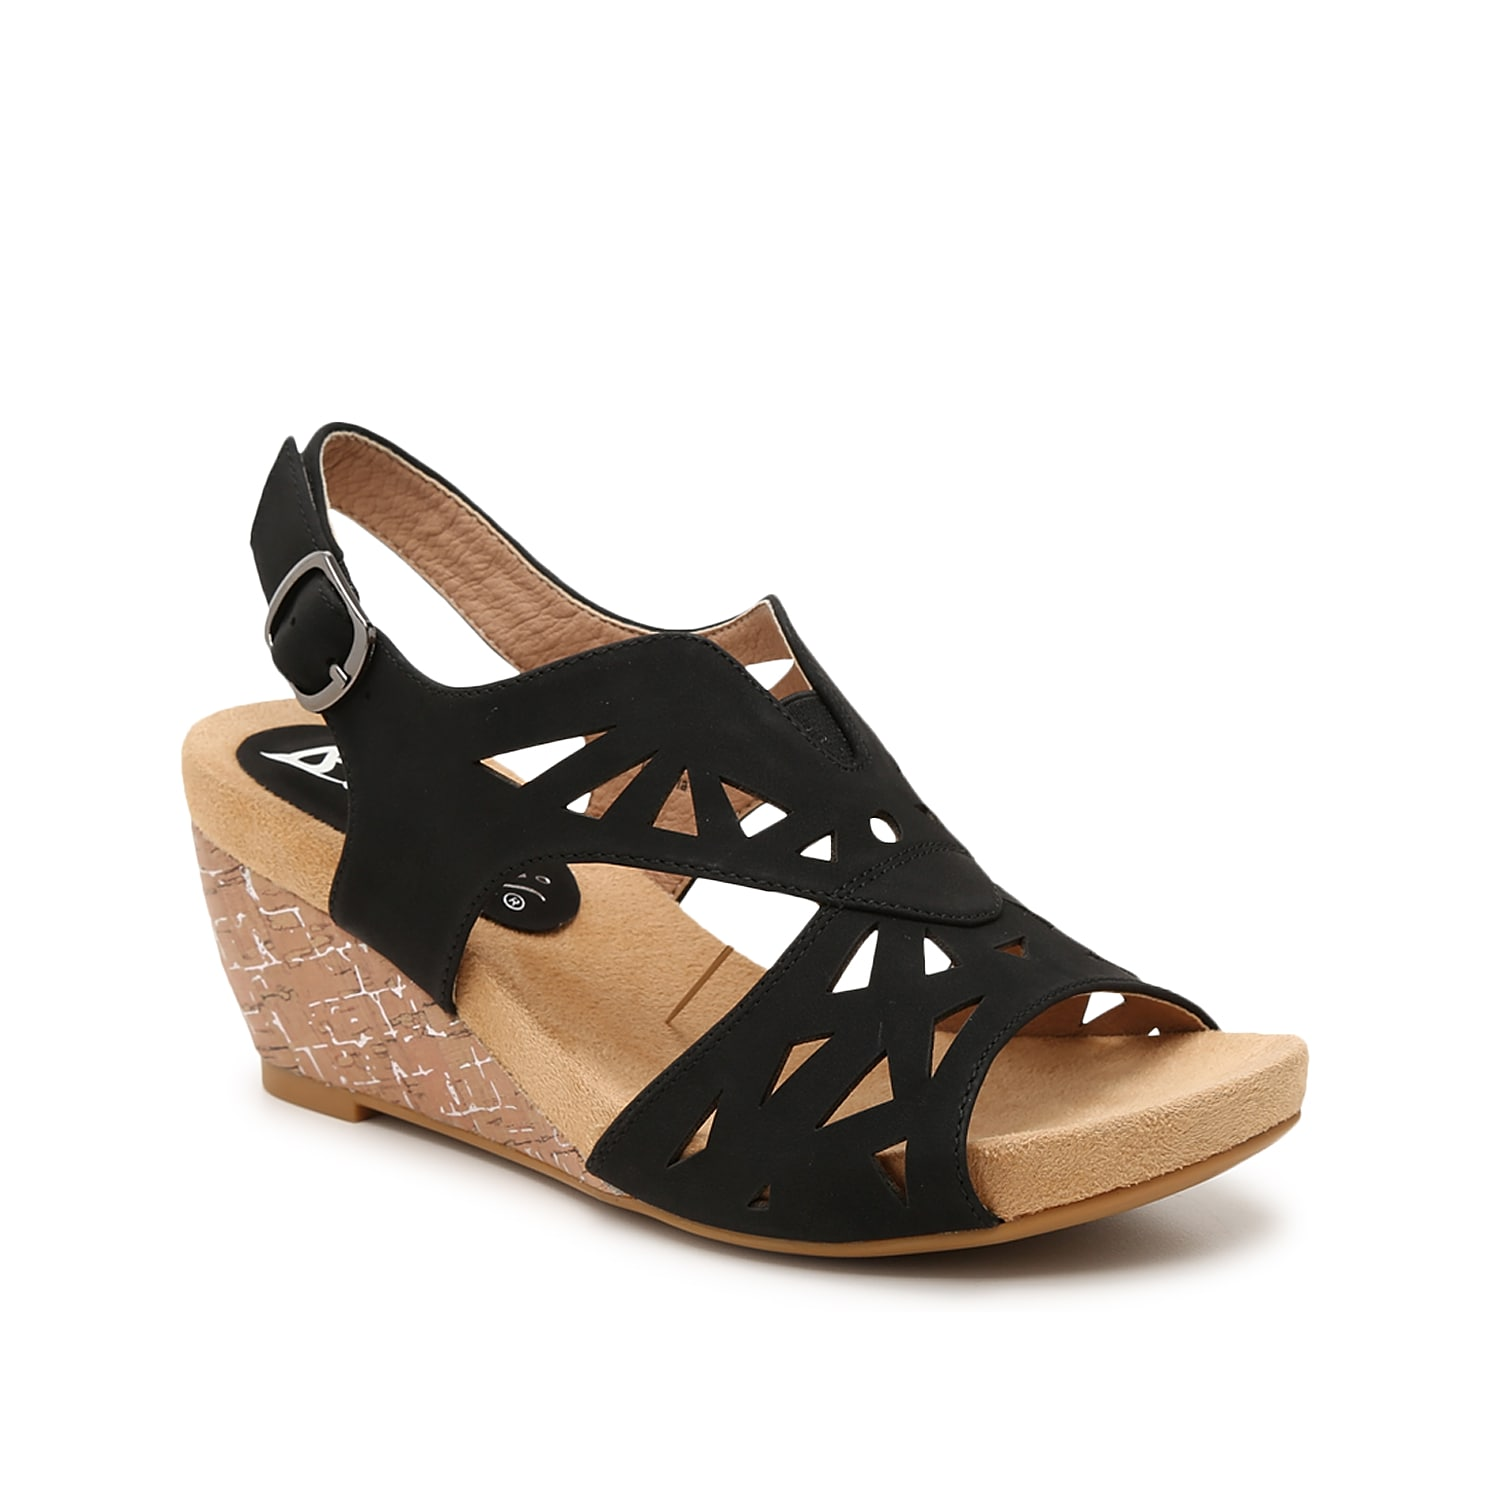 Feel as good as you look in the Beauty wedge sandals from Bellini. This pair features a laser-cut upper with triangle shapes and metallic detailing in the cork-covered heel.